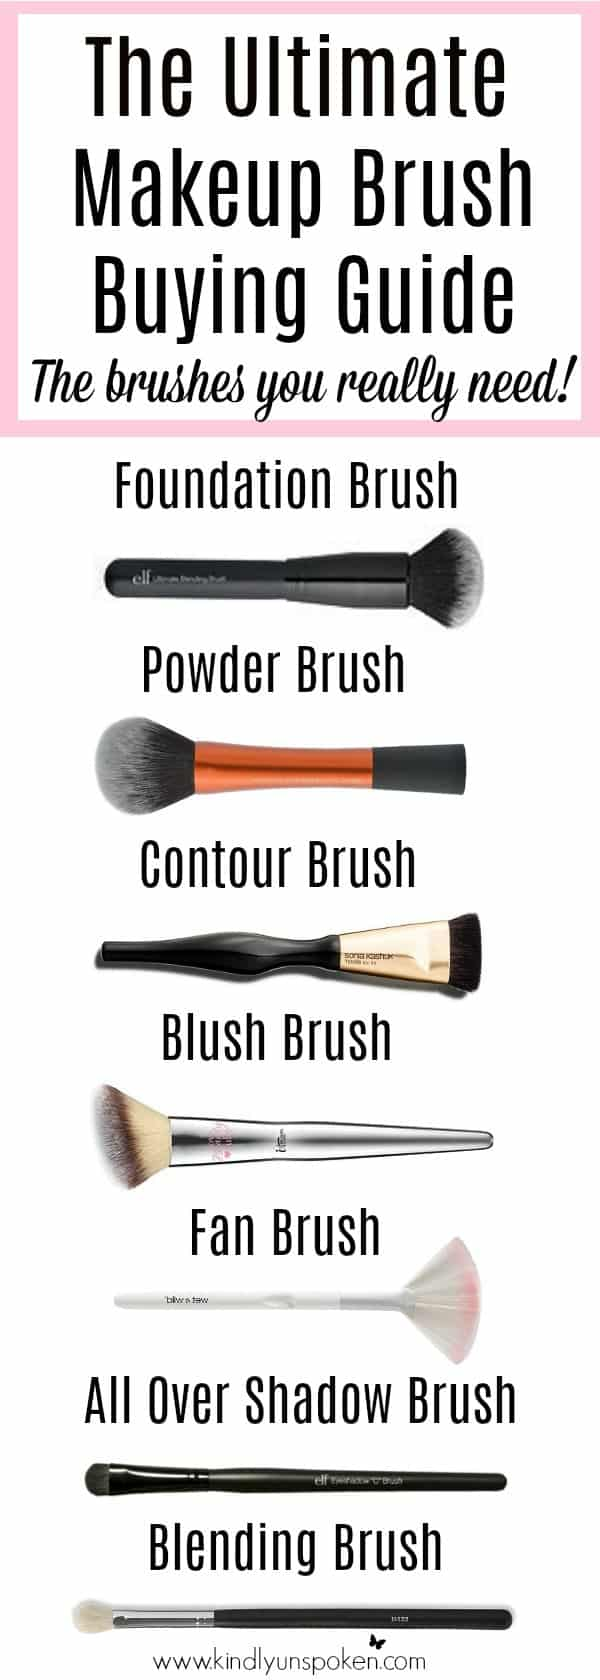 Check out my beginner makeup brush guide with a beginner's guide to makeup brushes, different types of makeup brushes and how to use them. Plus see which makeup brushes you really need and the best affordable drugstore makeup brushes for eyeshadow, foundation, contouring, and more! #makeupbrushes #makeupbrushguide #beginnermakeuptips